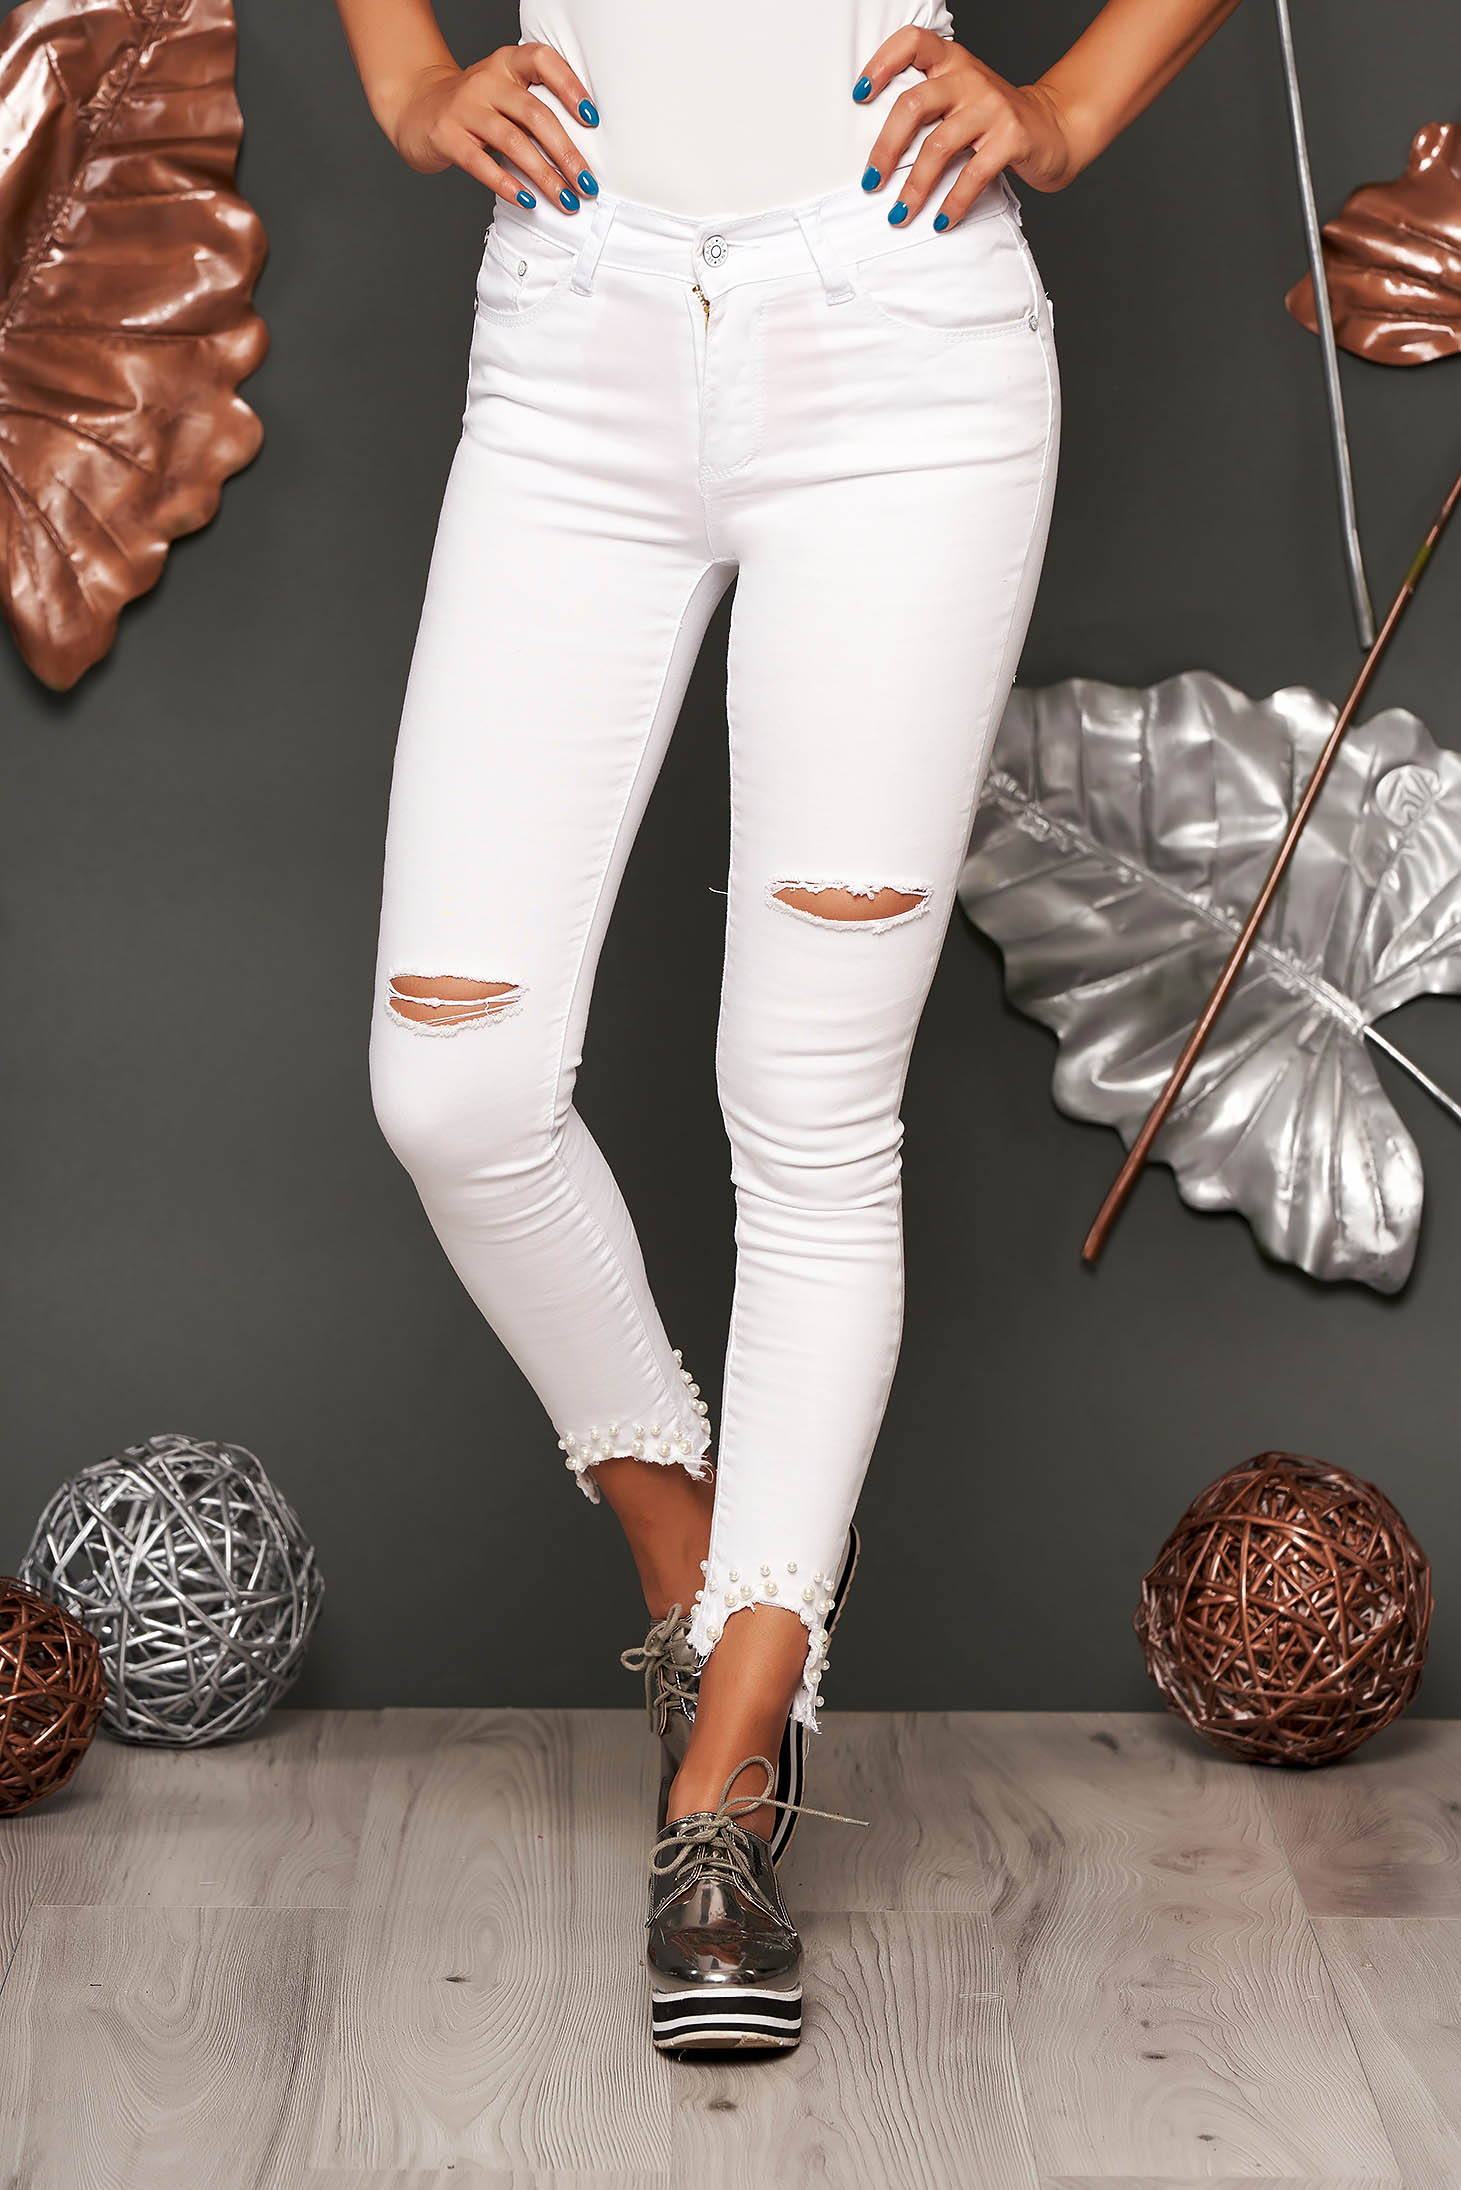 White jeans skinny jeans medium waist denim with ruptures with pearls